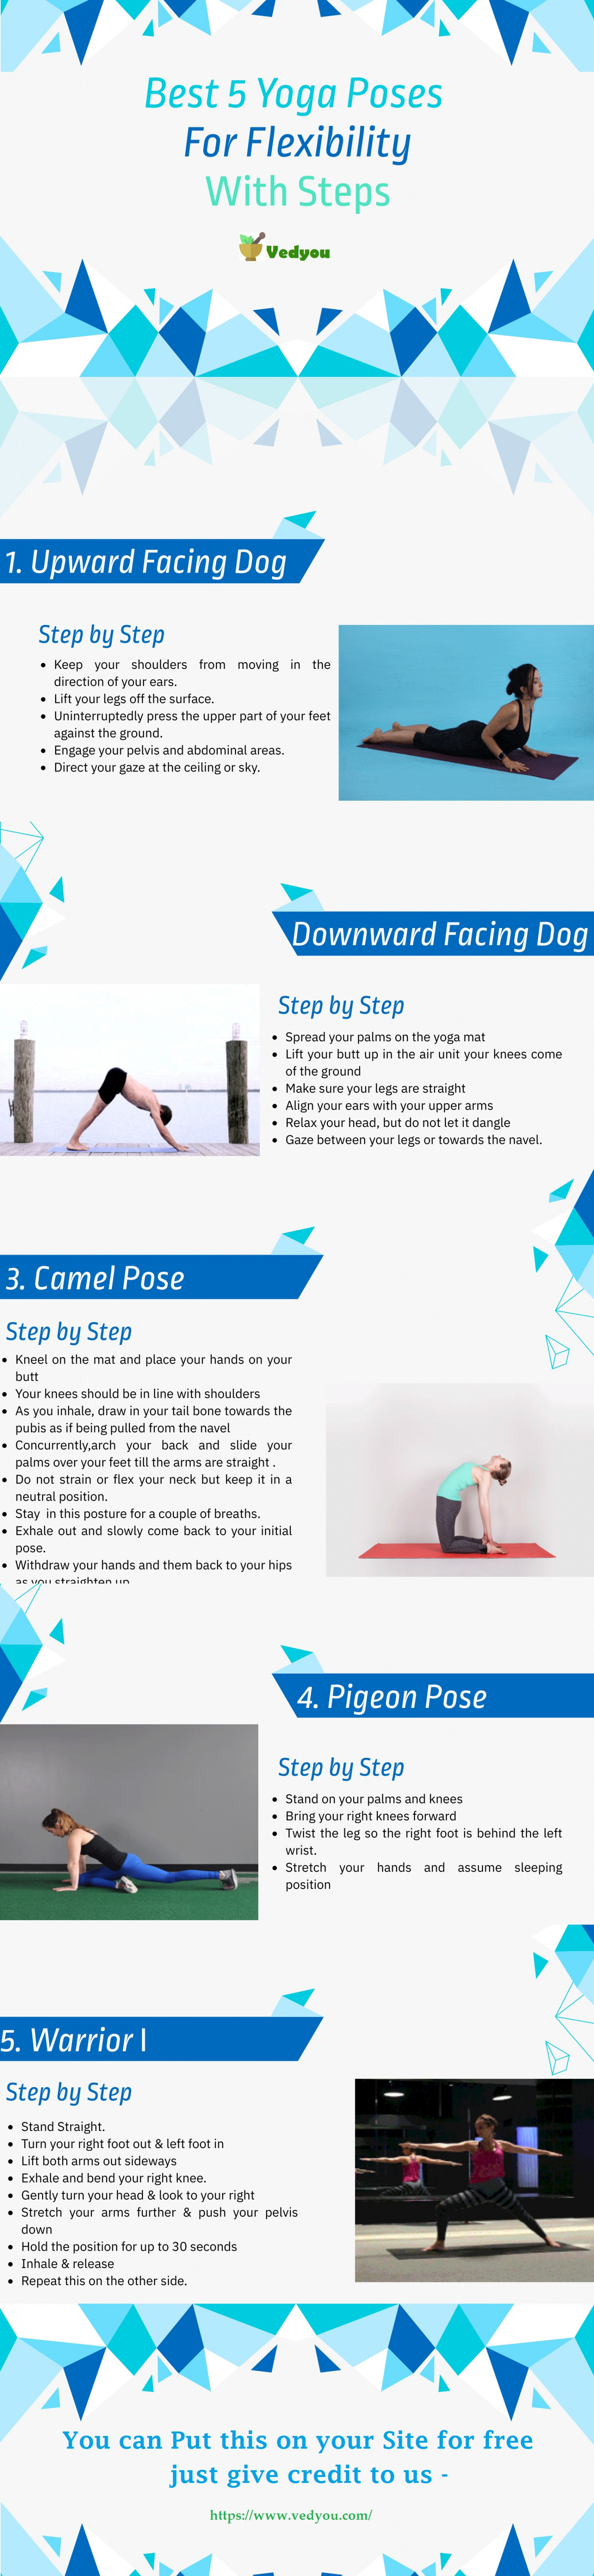 Best 5 Yoga Poses to increase Flexibility Infographic